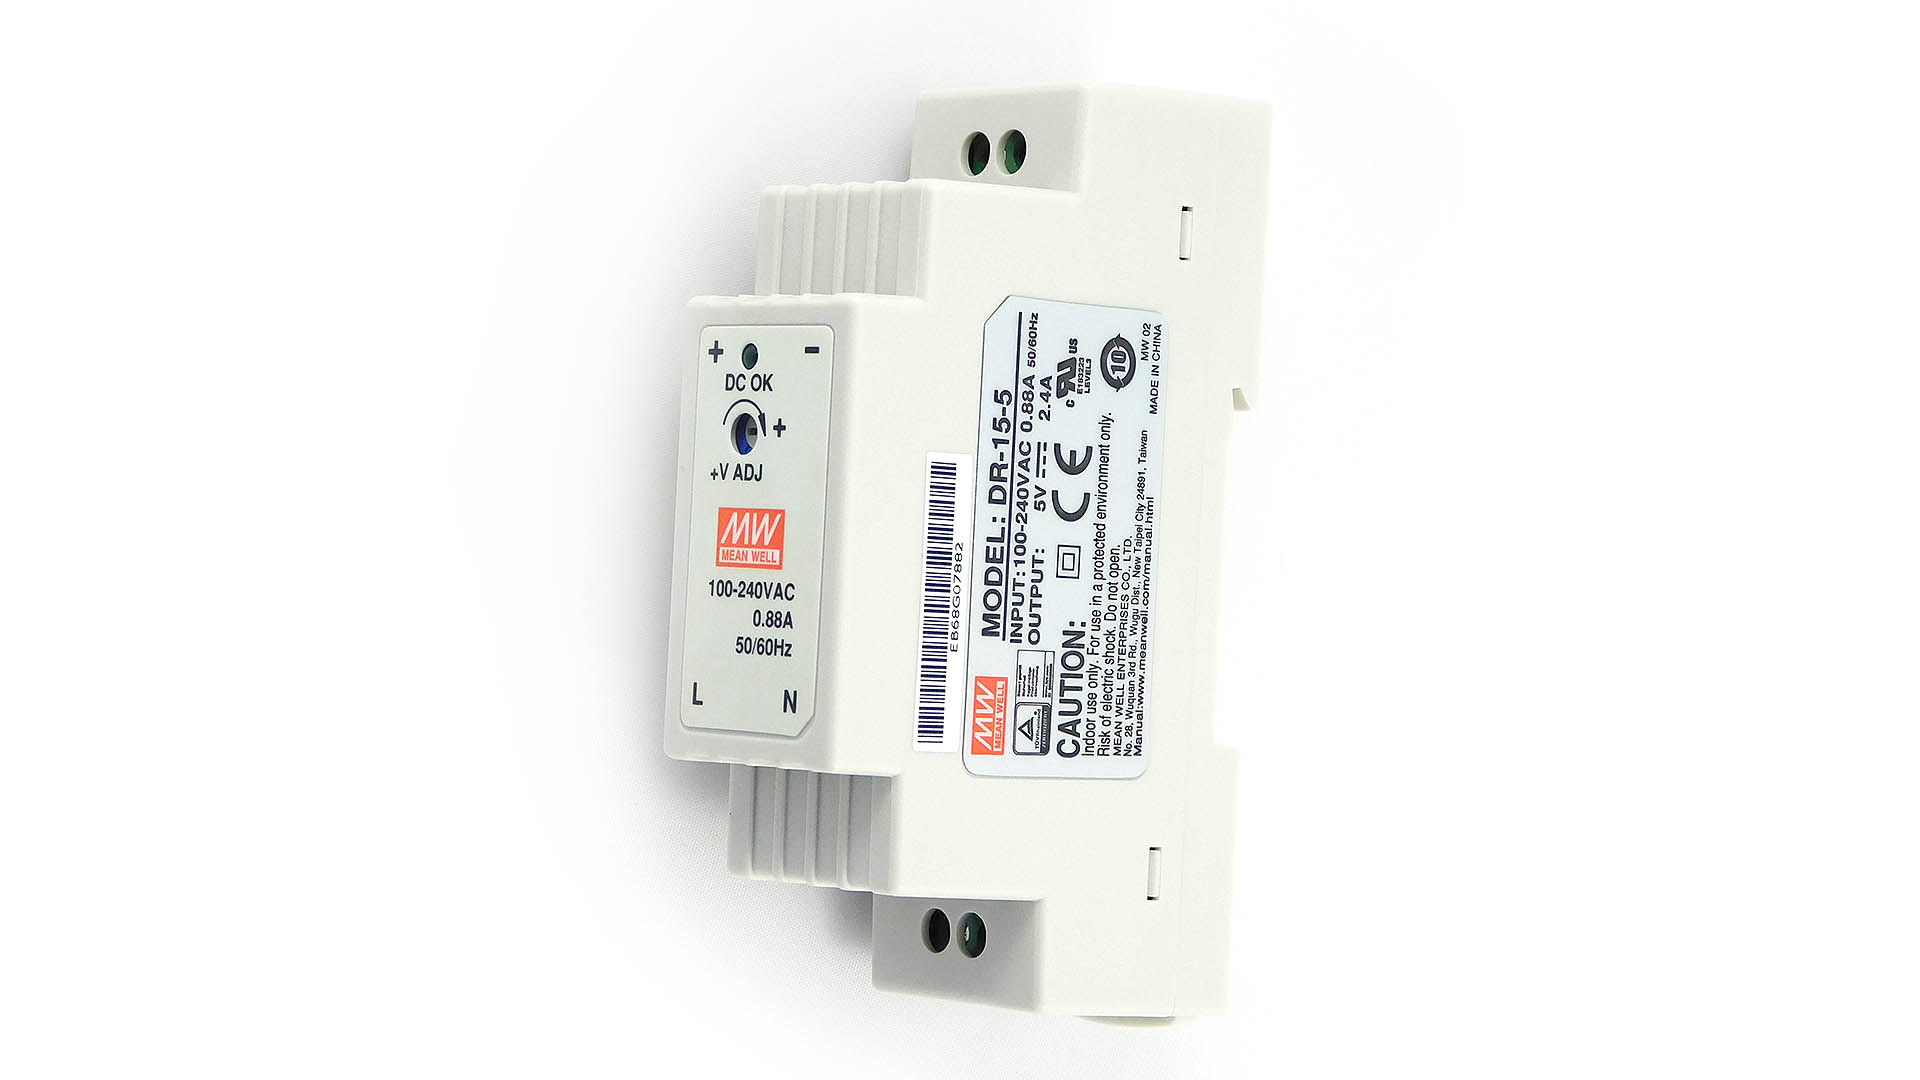 Nettigo: DIN rail power supply Mean Well 5V 2 4A